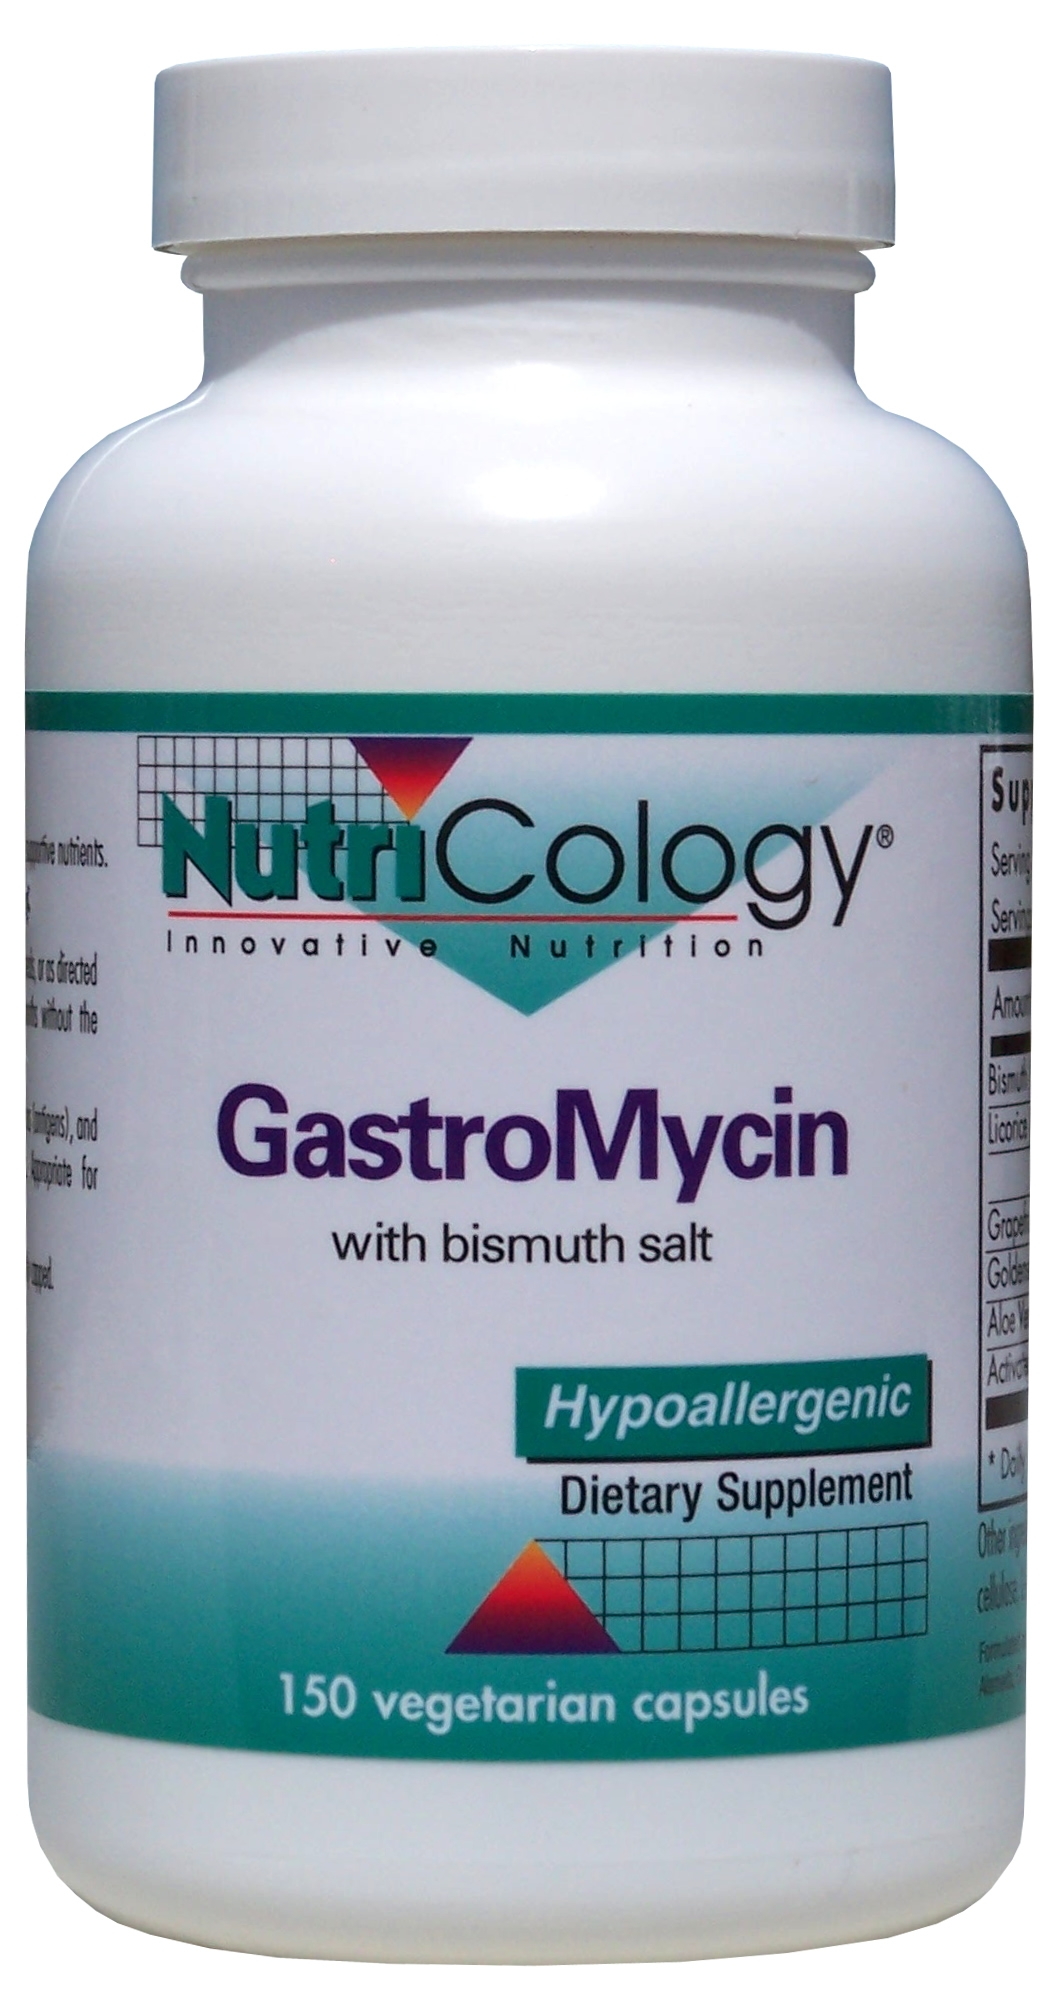 GastroMycin 150 Vegetarian Caps by Nutricology